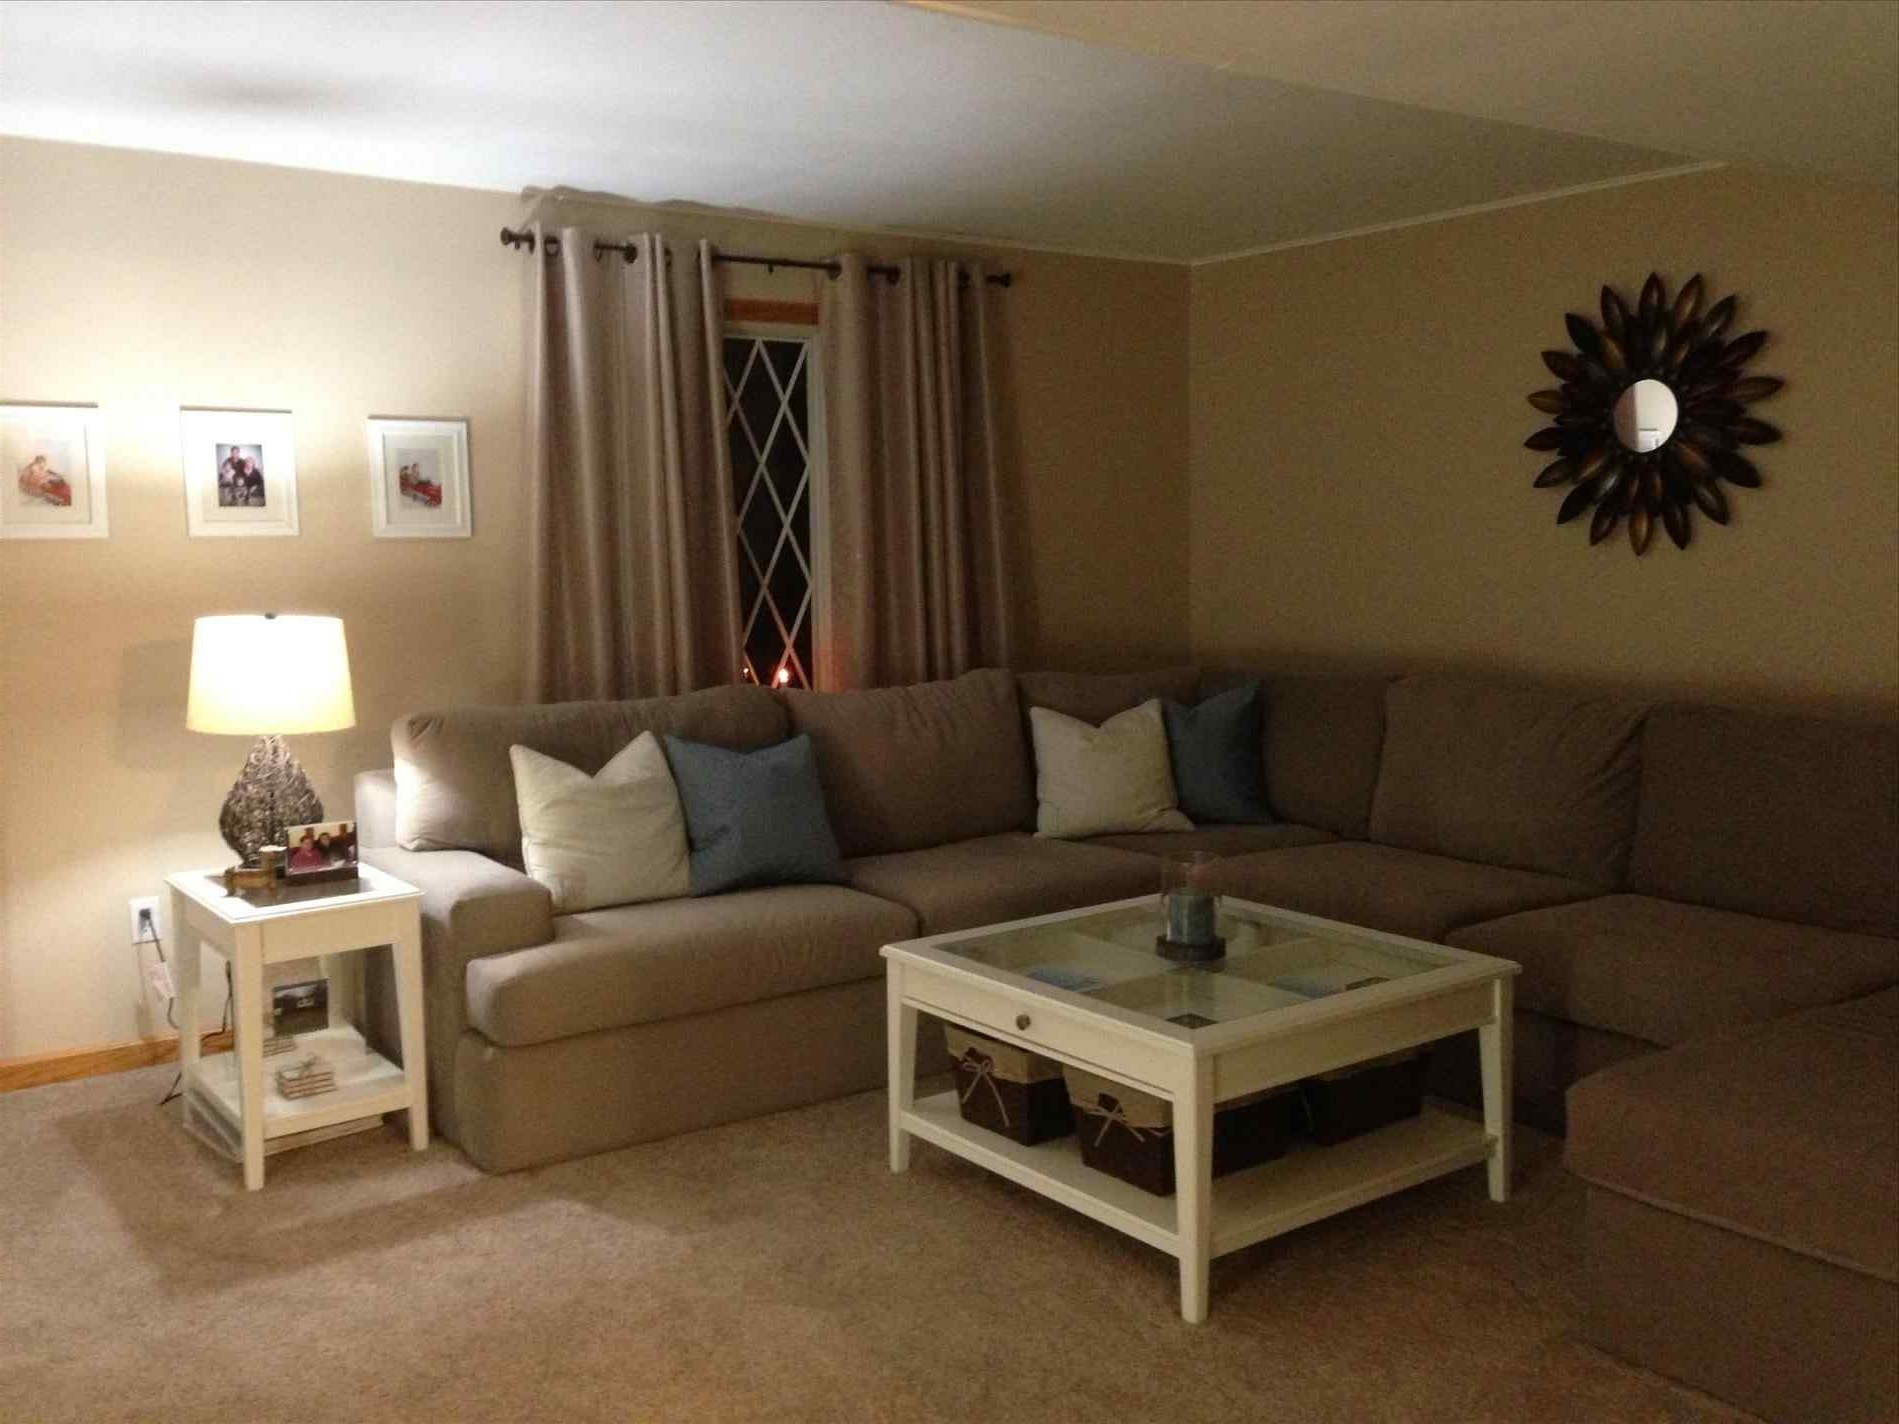 Wall Accents For Tan Room For 2017 Wood Credenza Shelves Gray Centerfieldbarcom Gray Blue And Tan (View 11 of 15)